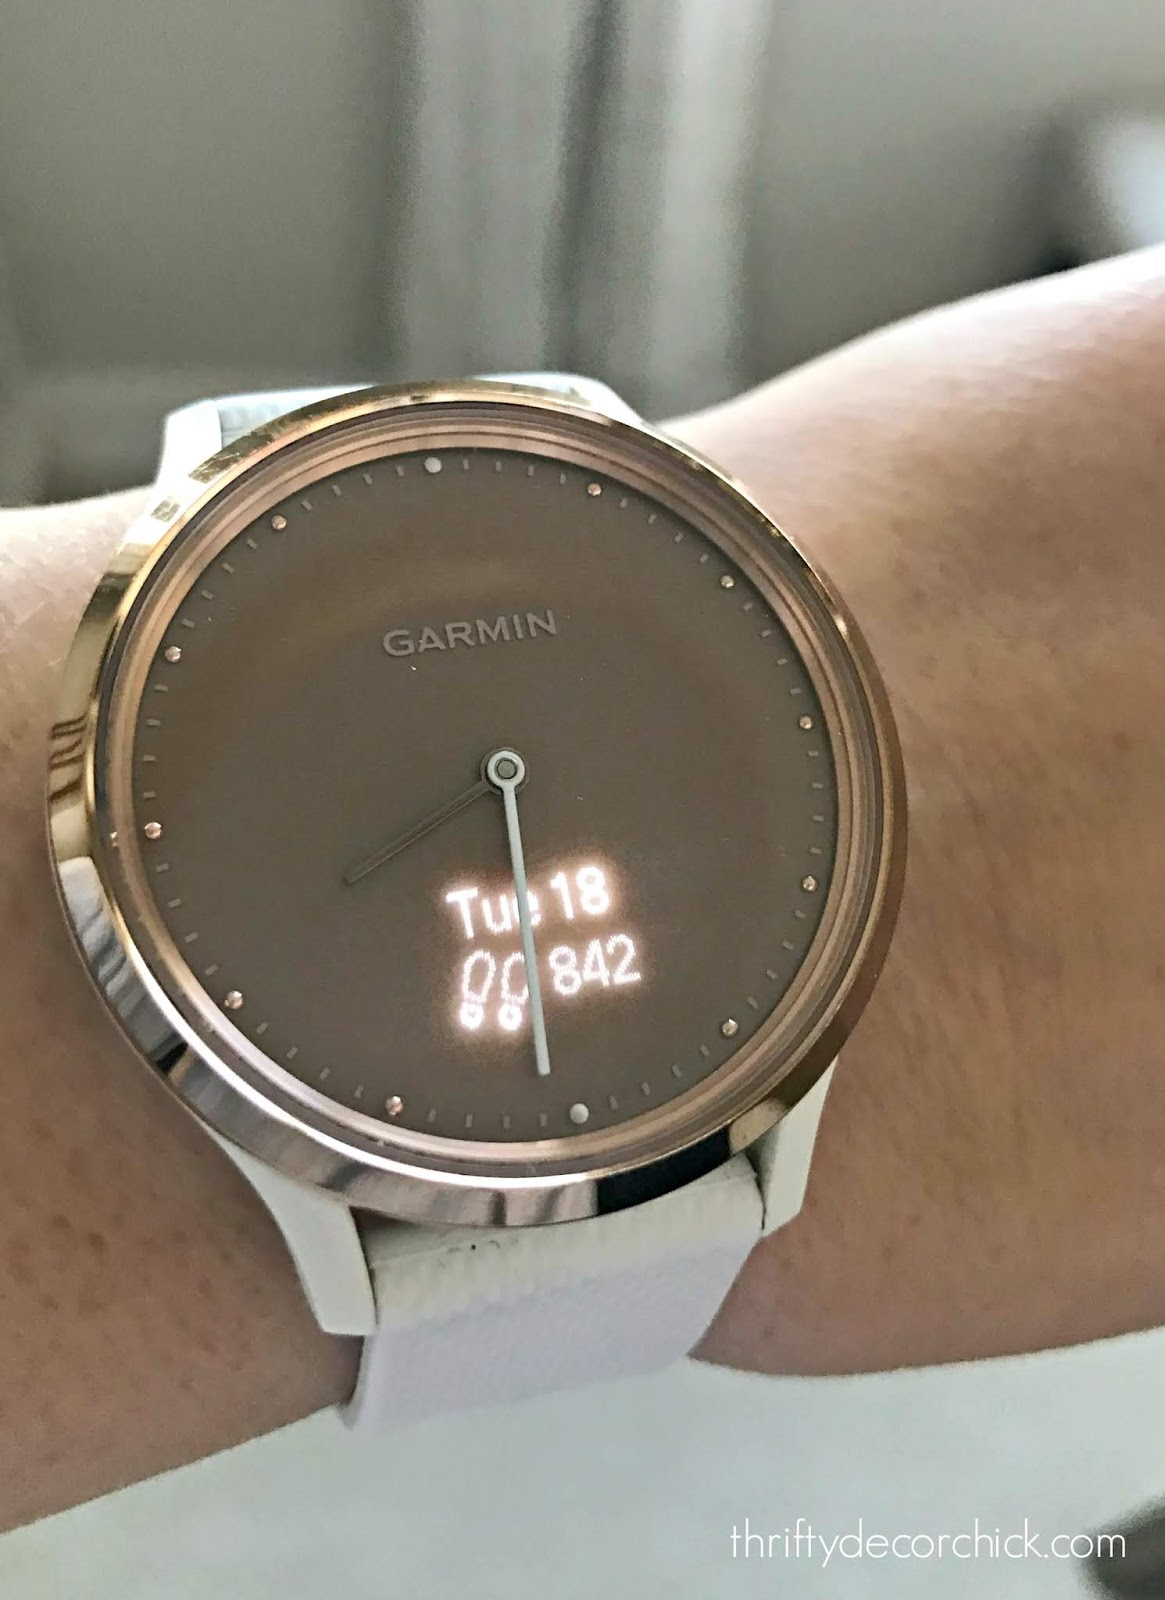 Pretty Garmin sports watch/tracker